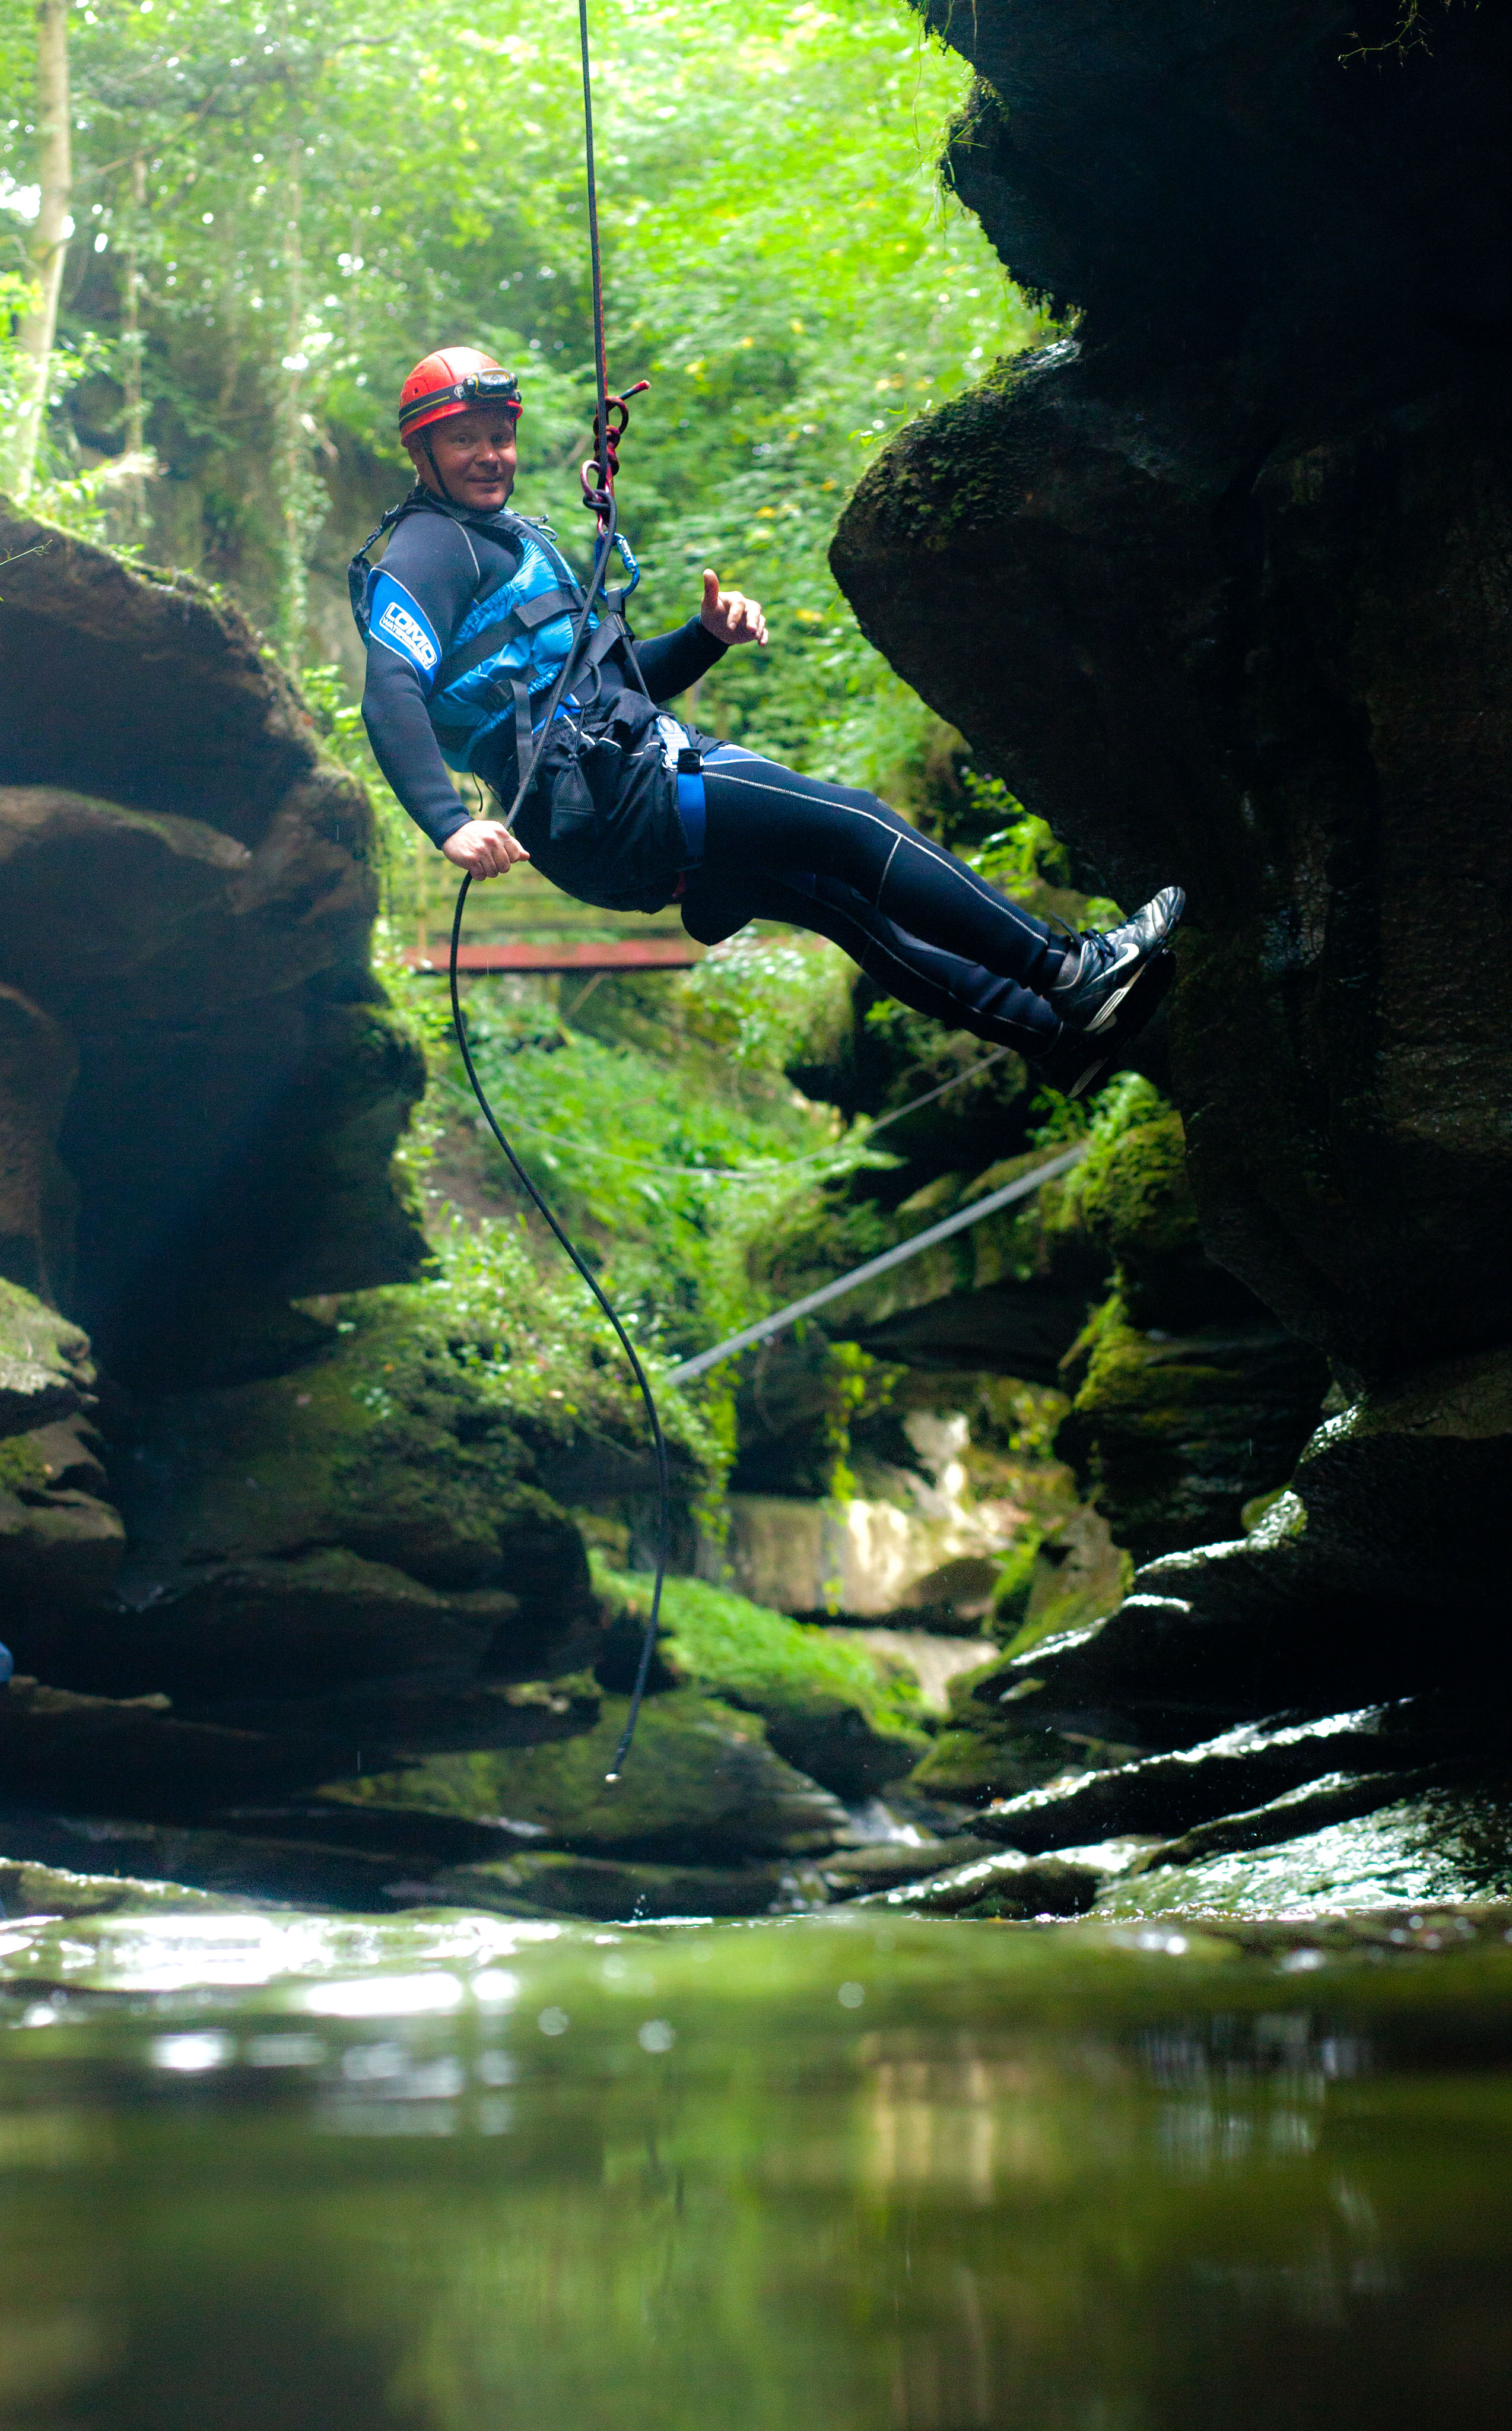 man abseiling into How Stean Gorge beck